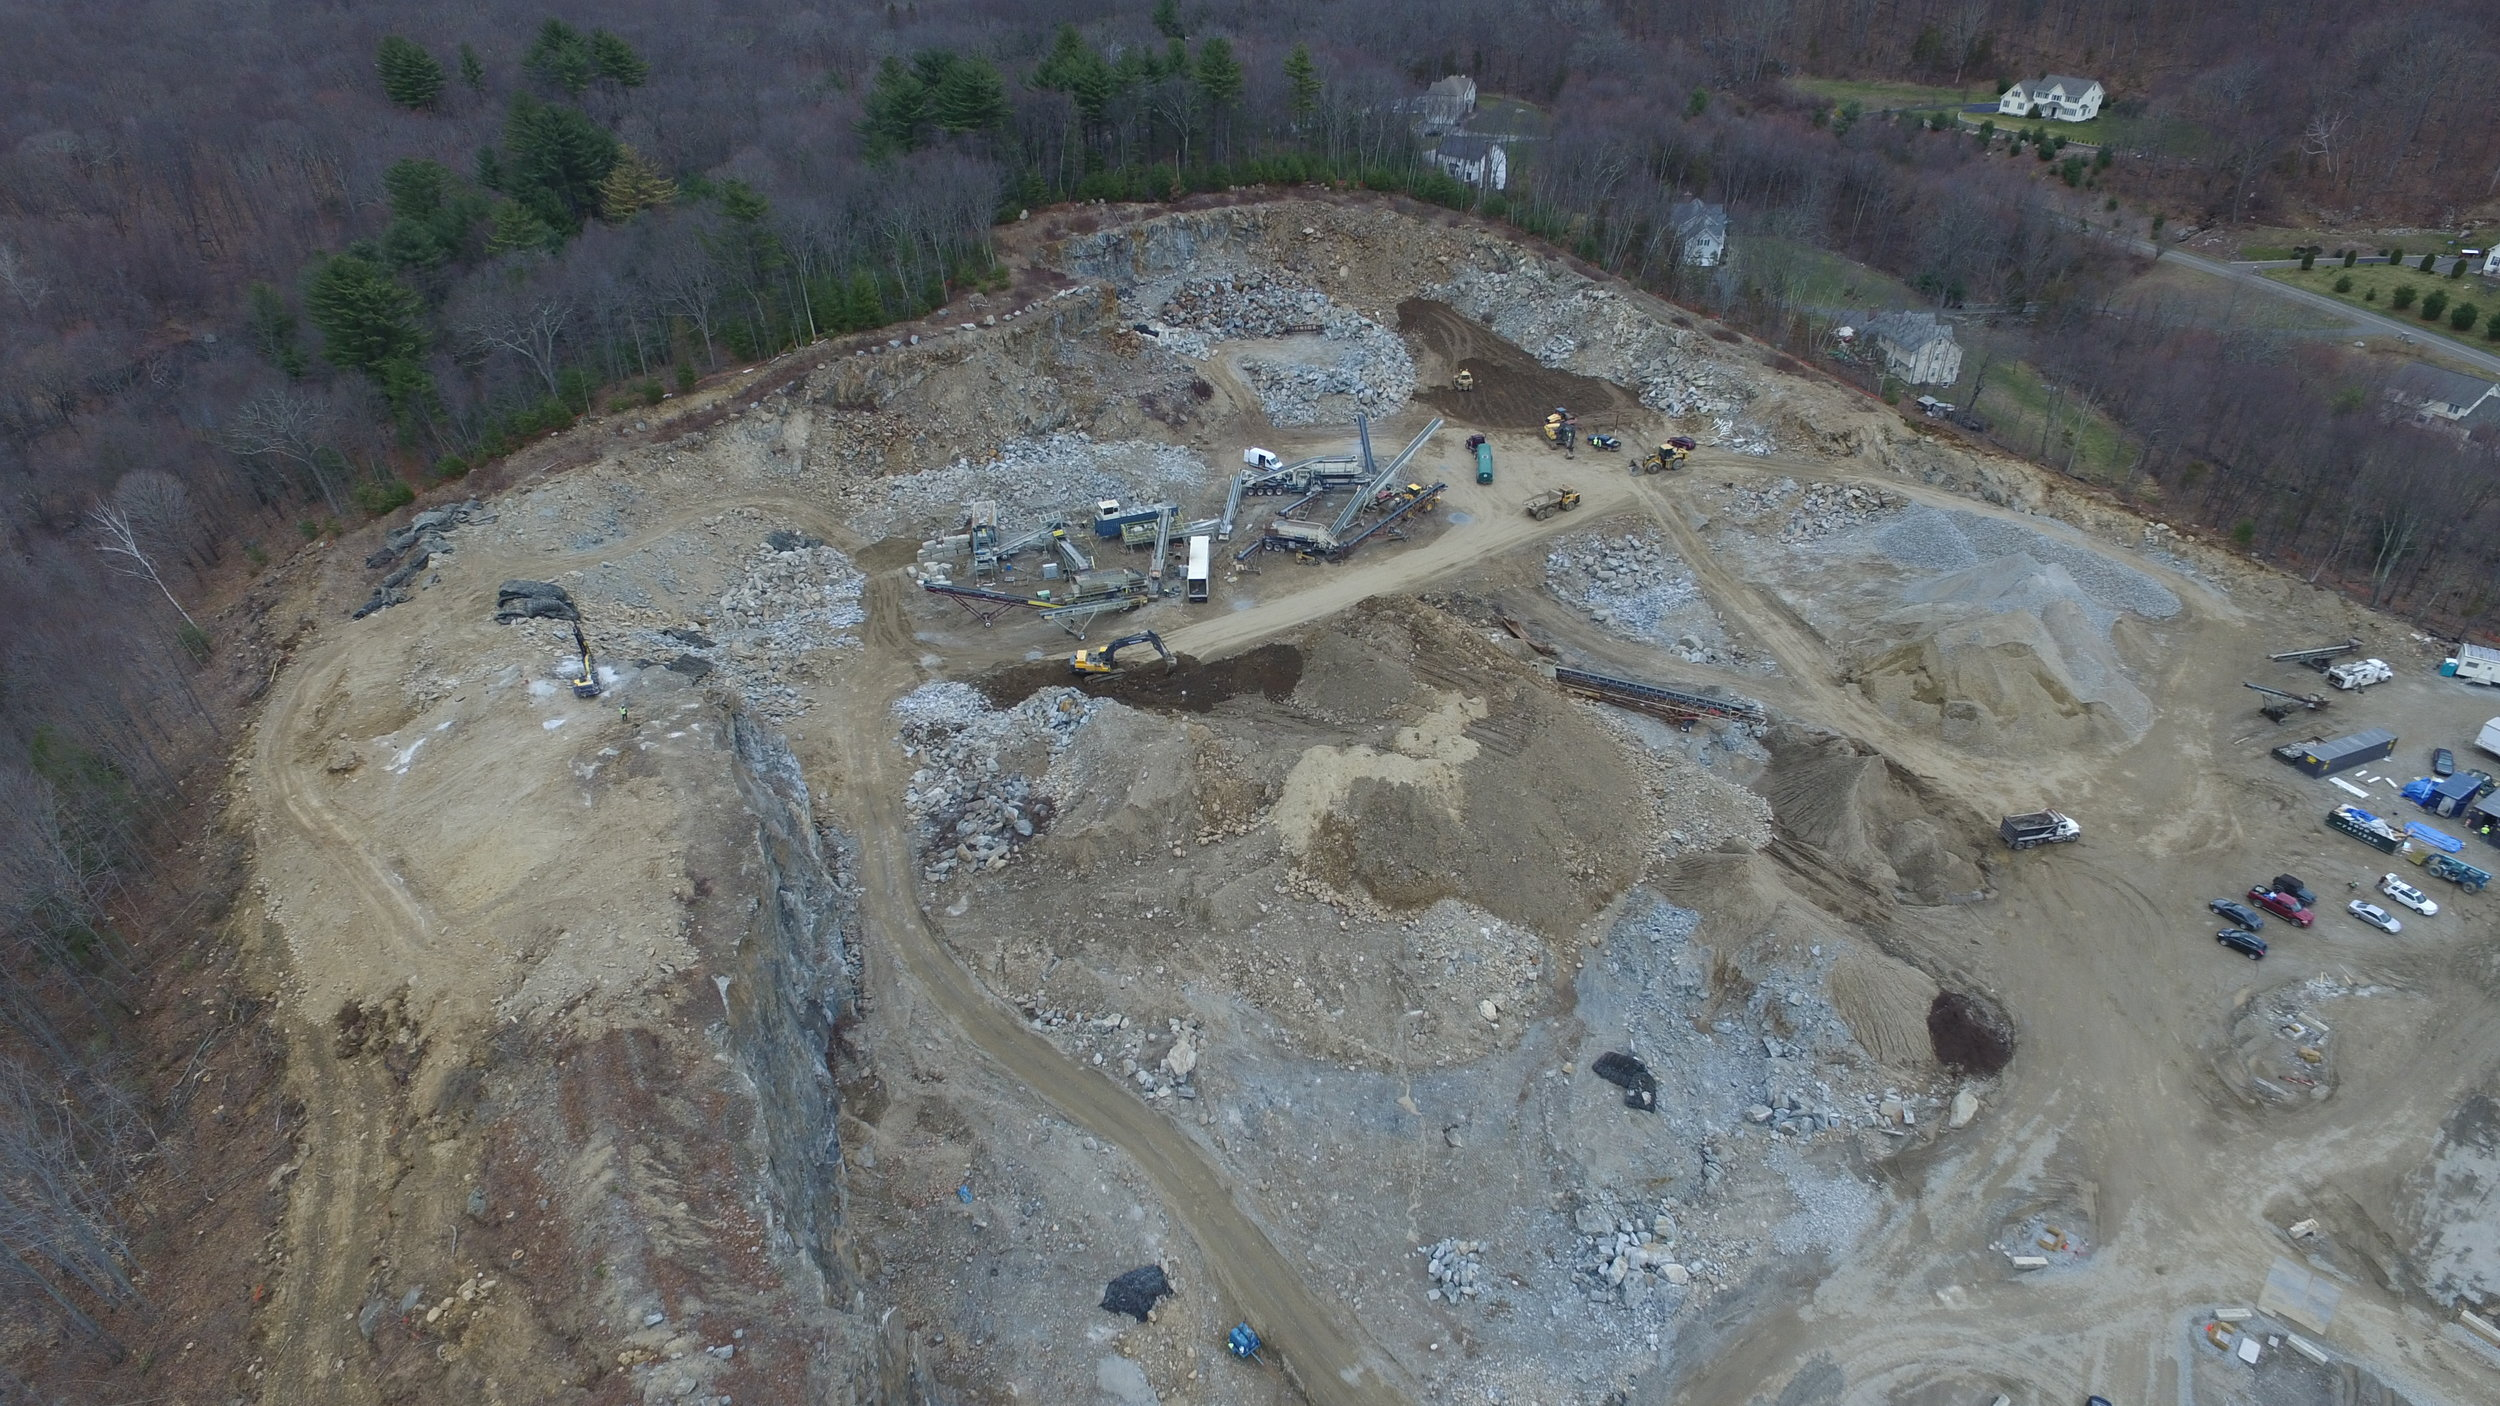 Seymour Earth excavation - 203-888-8165